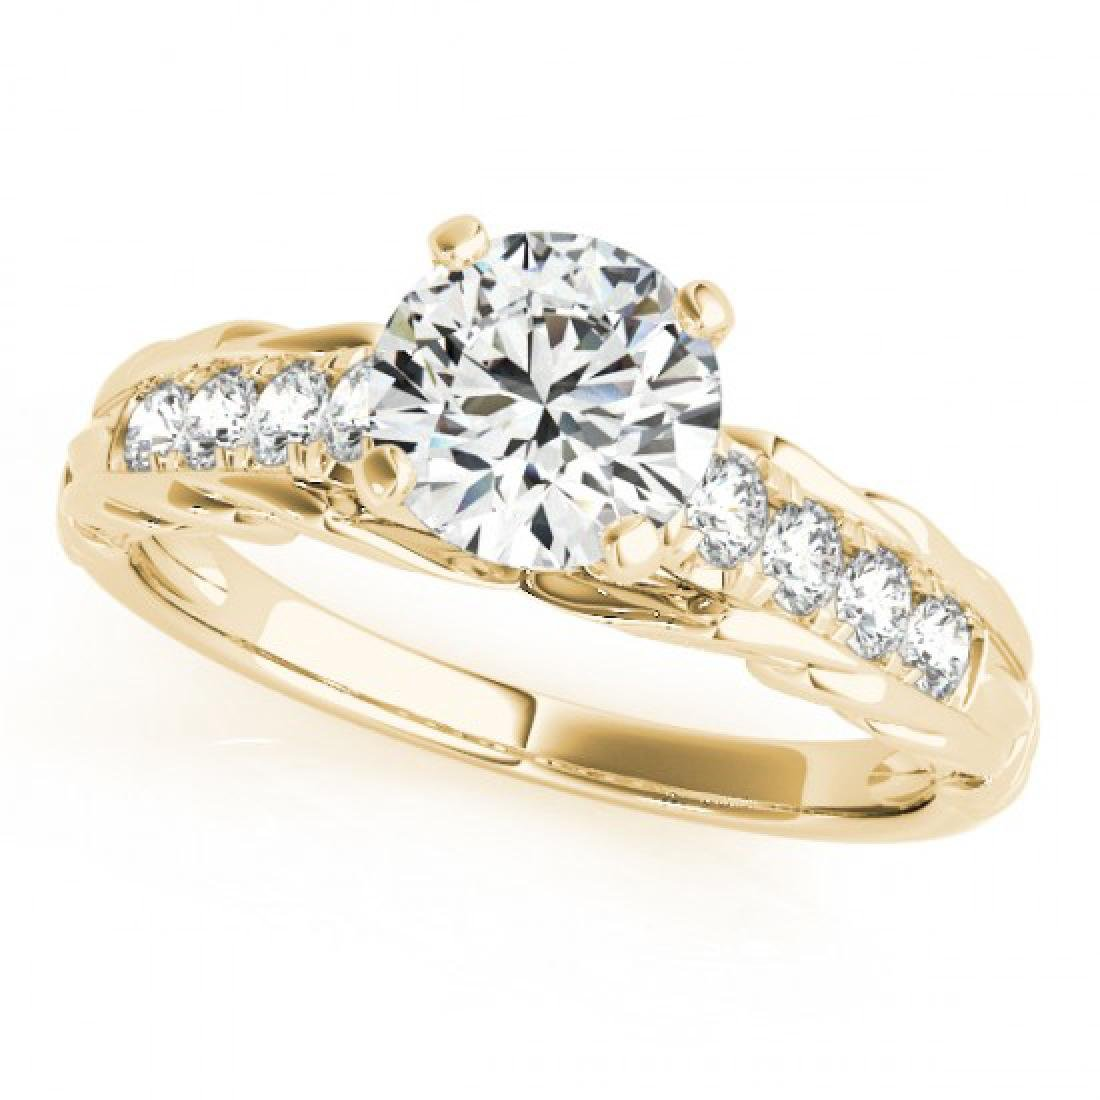 0.70 CTW Certified VS/SI Diamond Solitaire Ring 14K